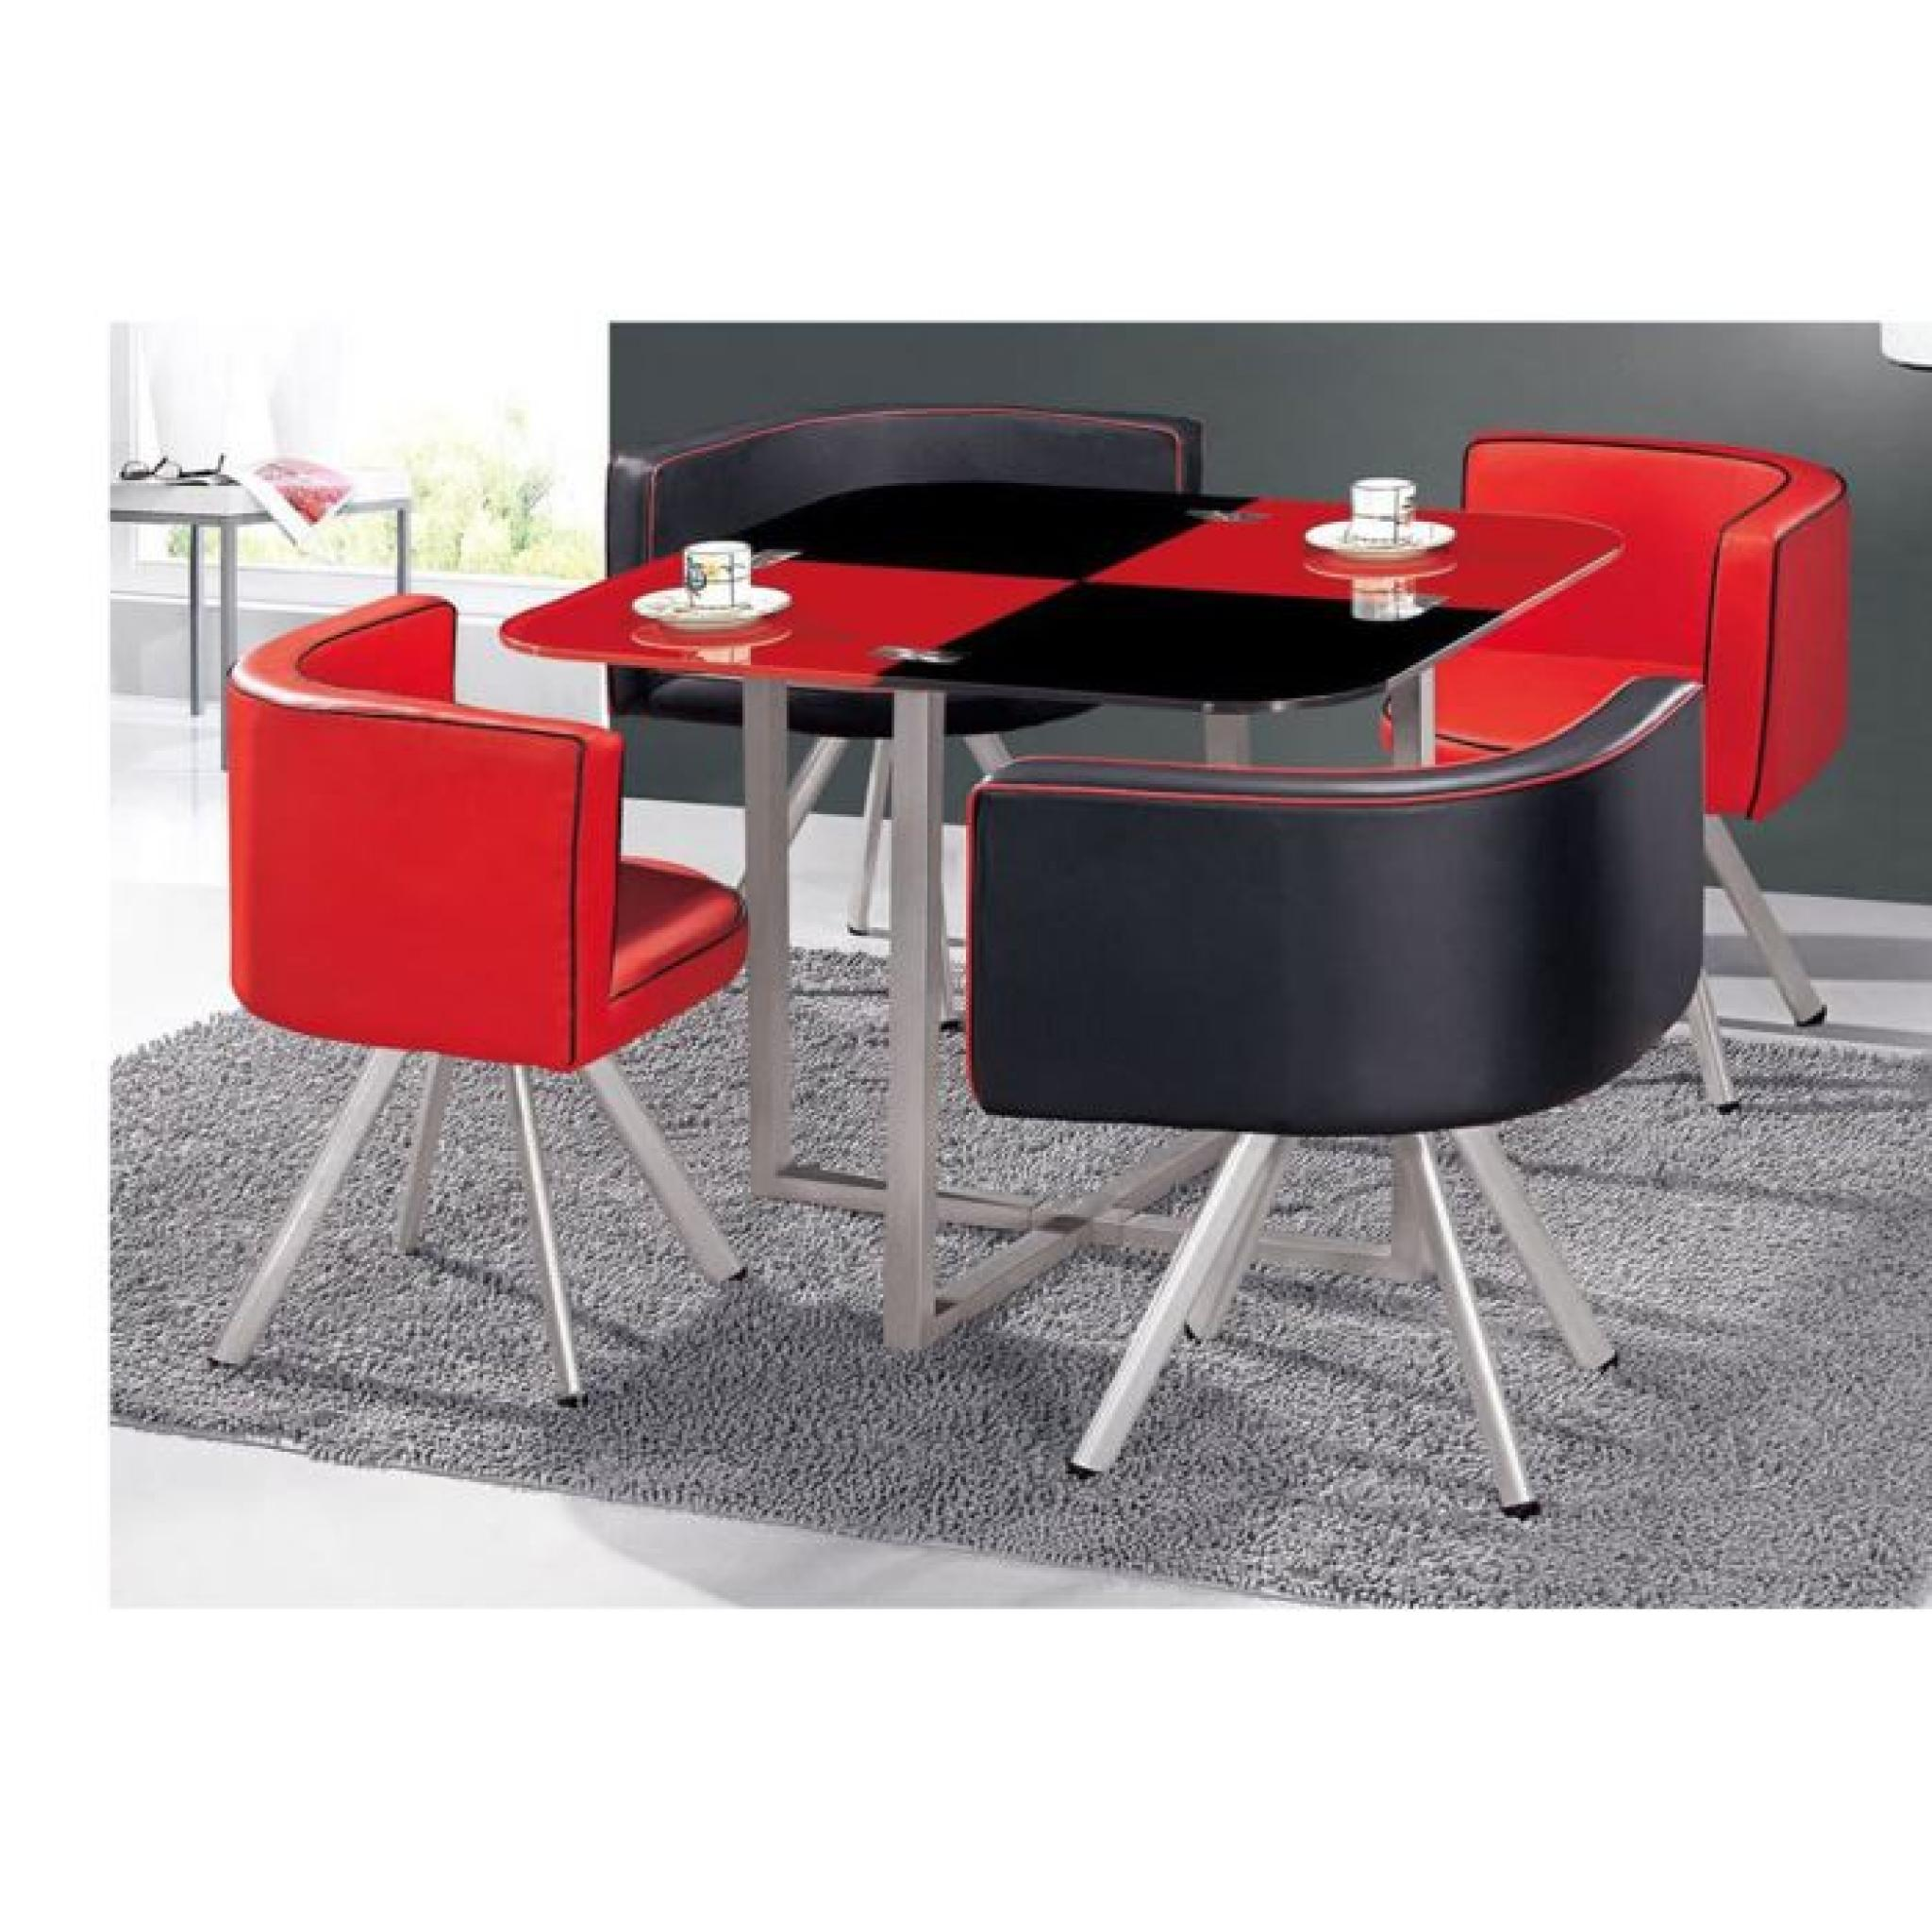 table manger corner 90 cm rouge noir en verre achat vente table salle a manger pas cher. Black Bedroom Furniture Sets. Home Design Ideas